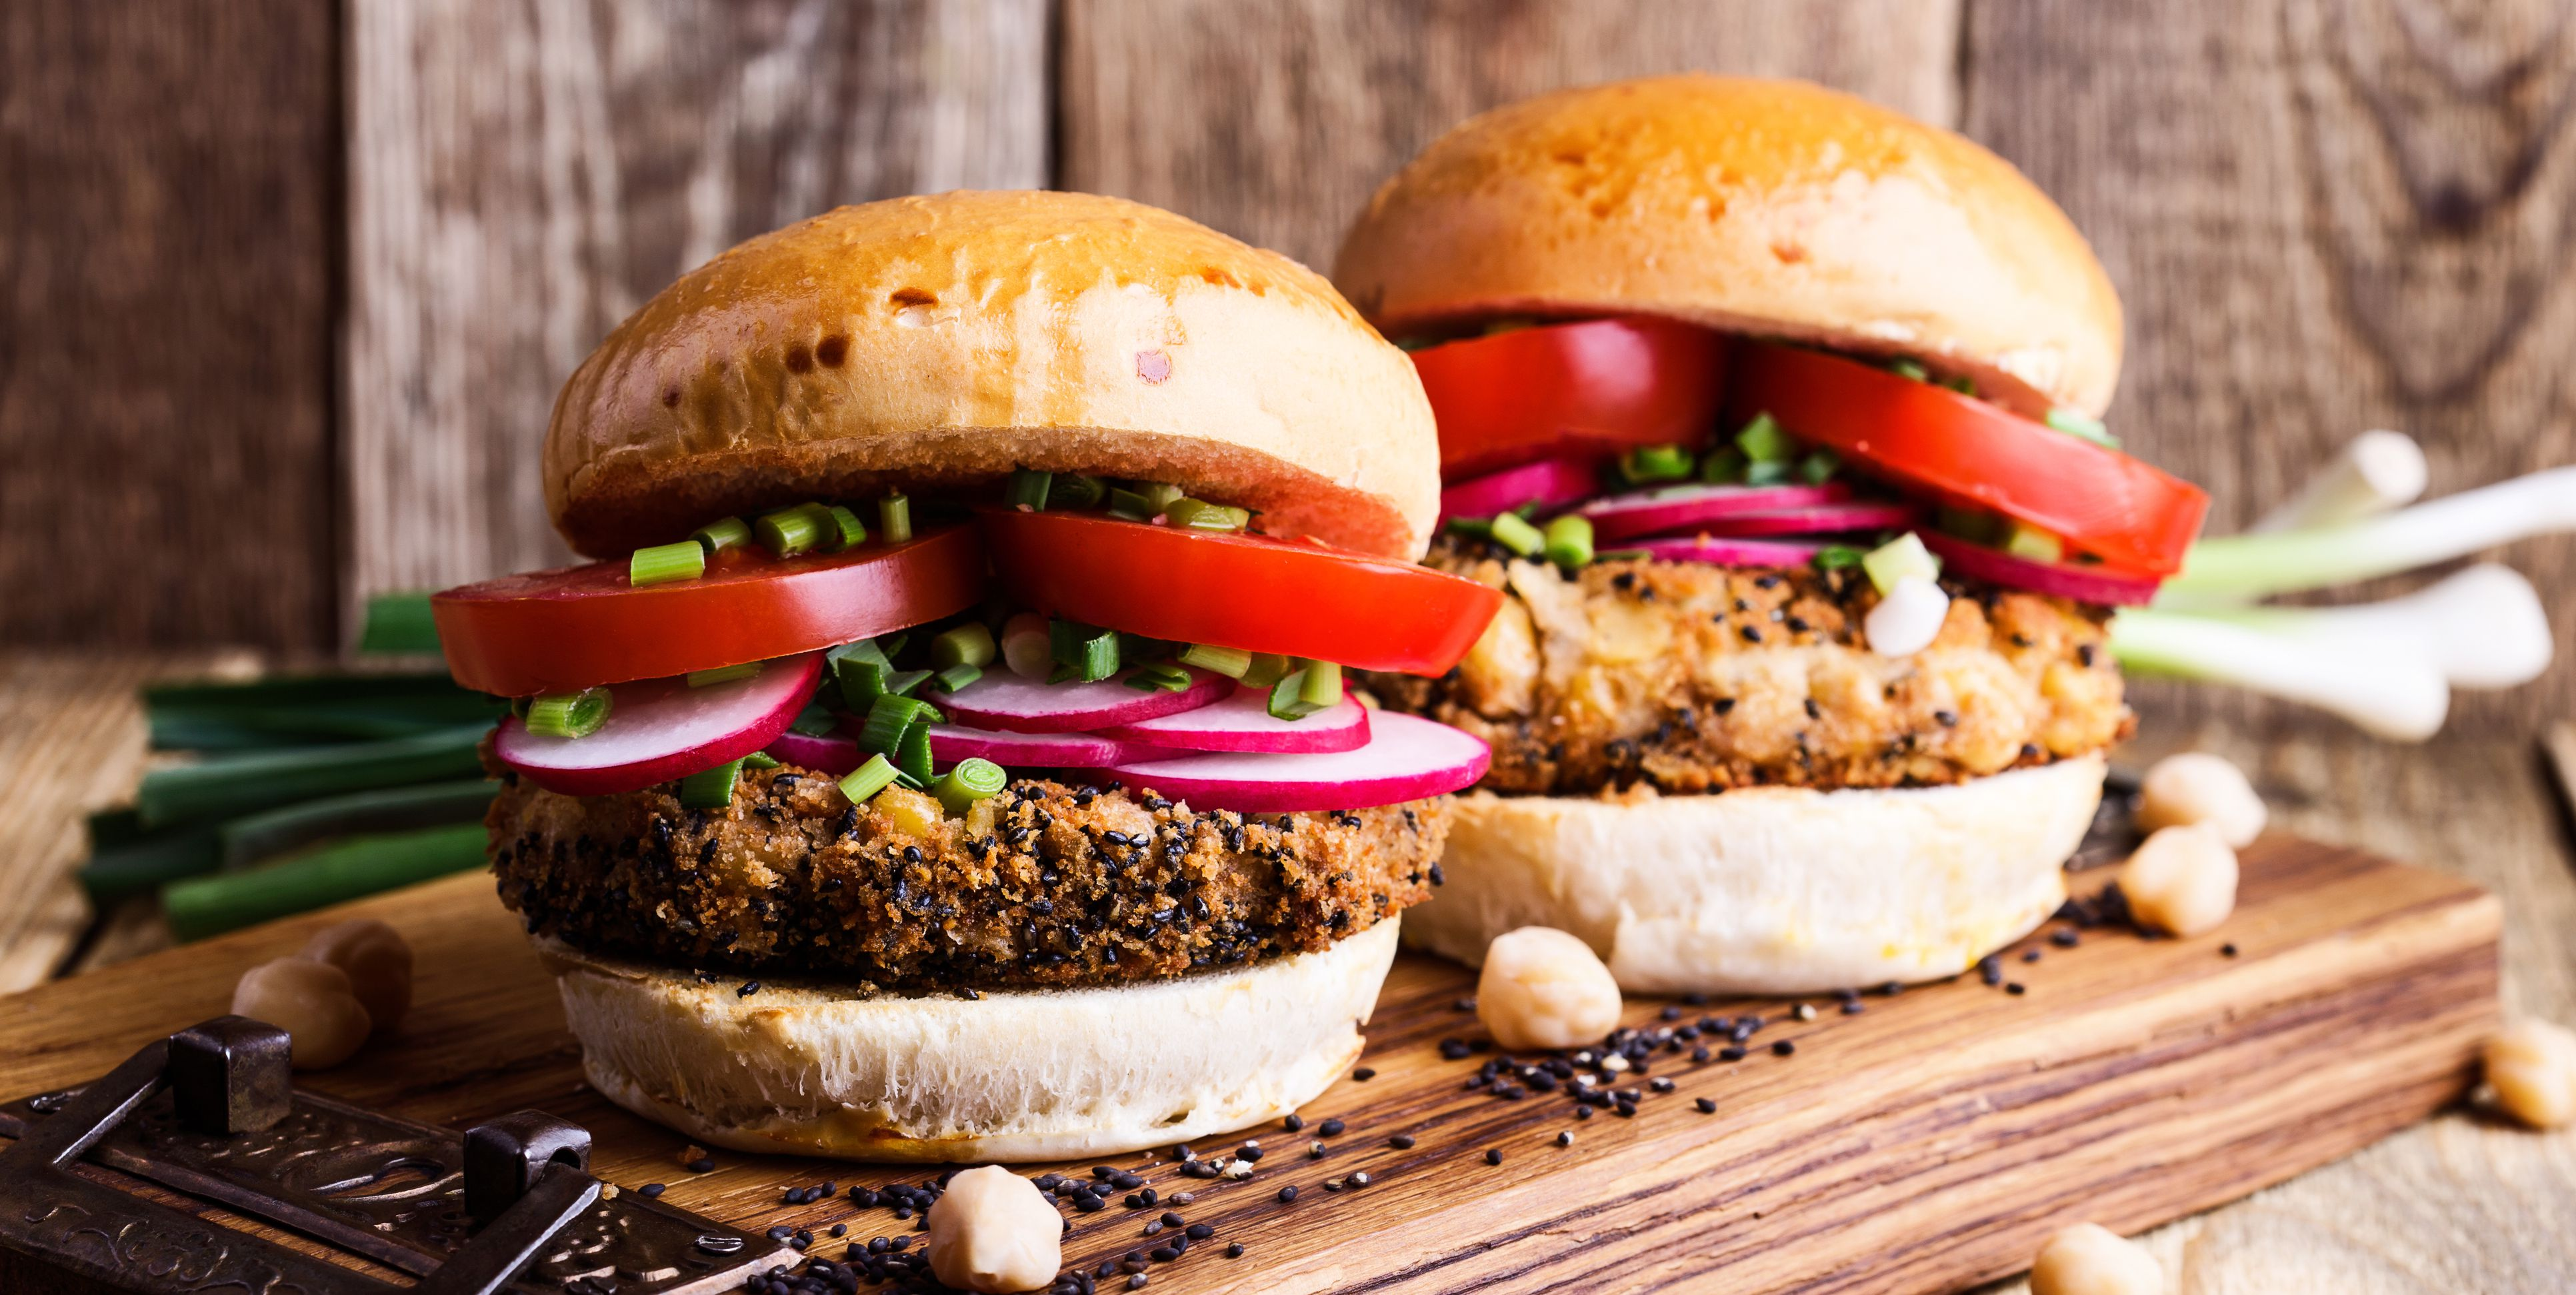 You'll Love These Veggie Burgers Even If You're Not A Vegetarian